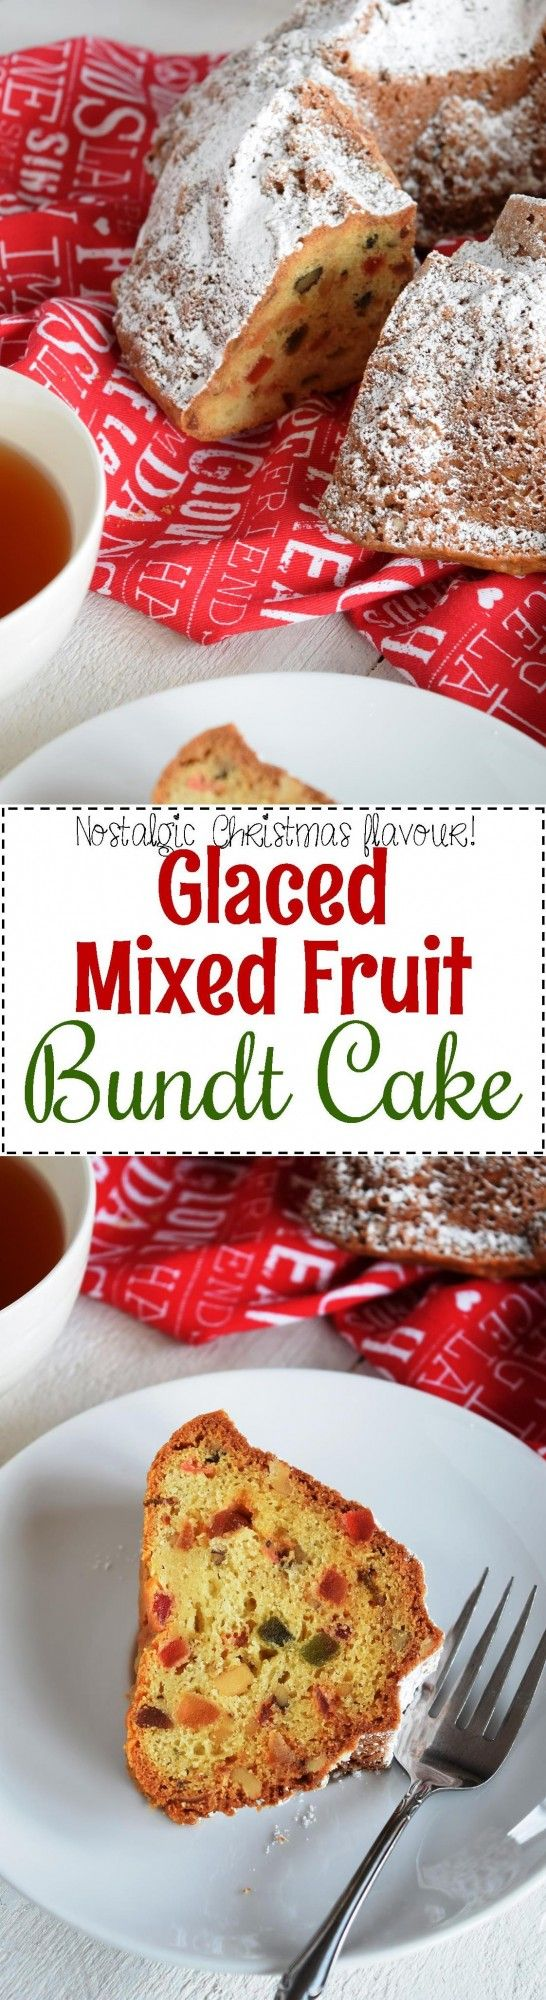 A Newfoundland Christmas tradition, Glace Mixed Fruit Bundt Cake is moist and delicious. The addition of cream cheese and walnuts make this cake extra tasty and perfect for holiday sharing! I'm about to embark on a whole new adventure; one…